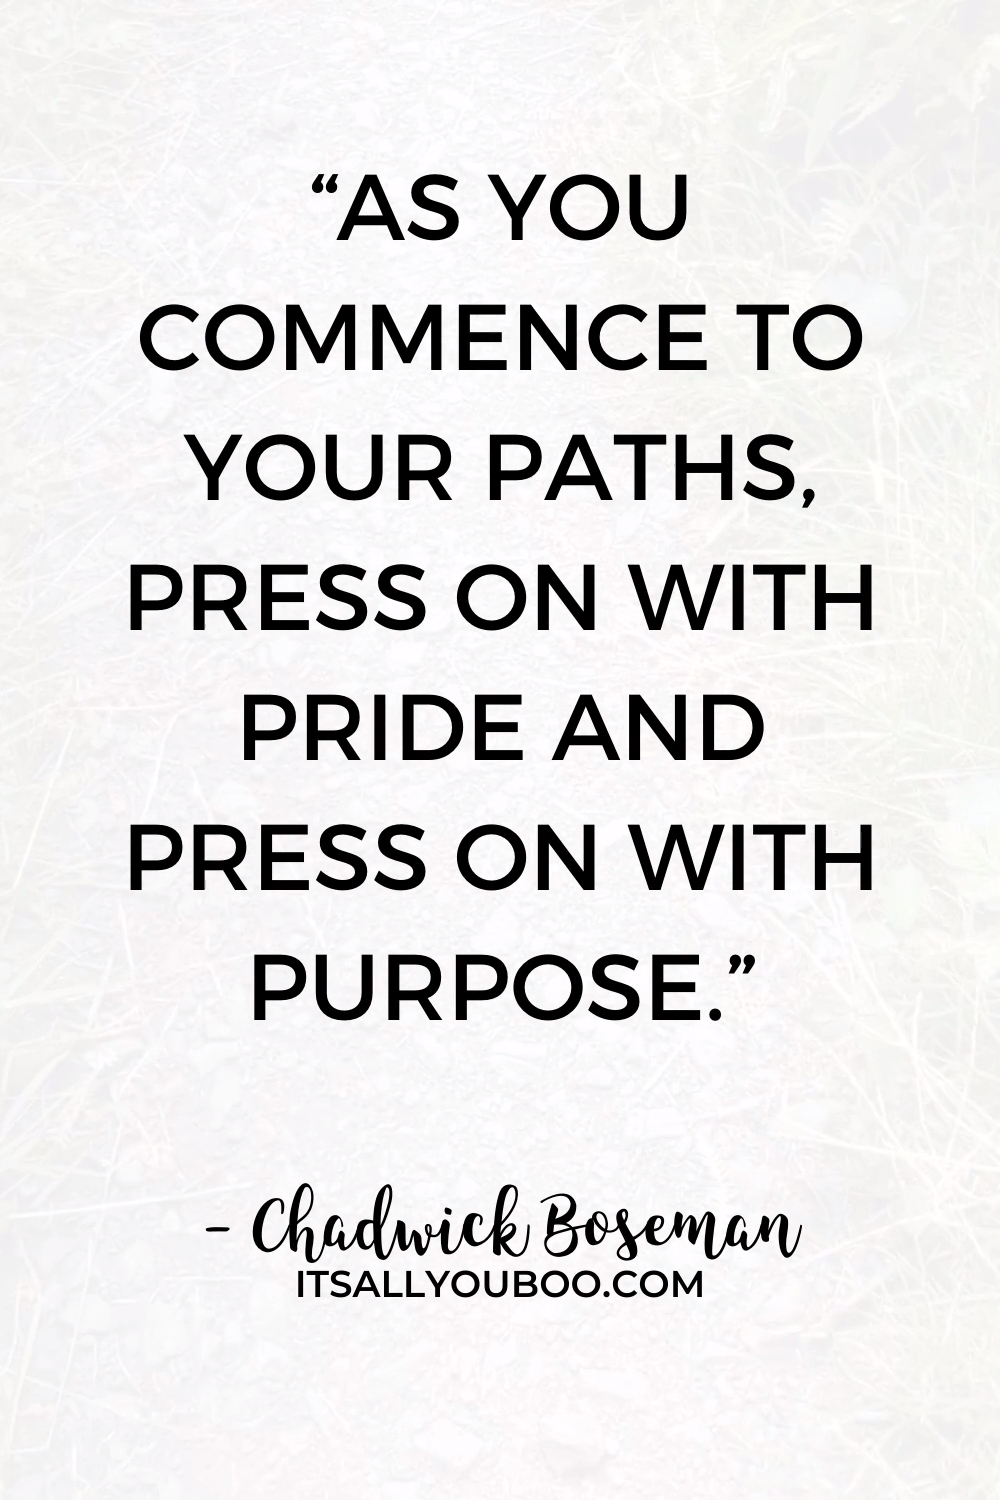 Keep Moving with Purpose